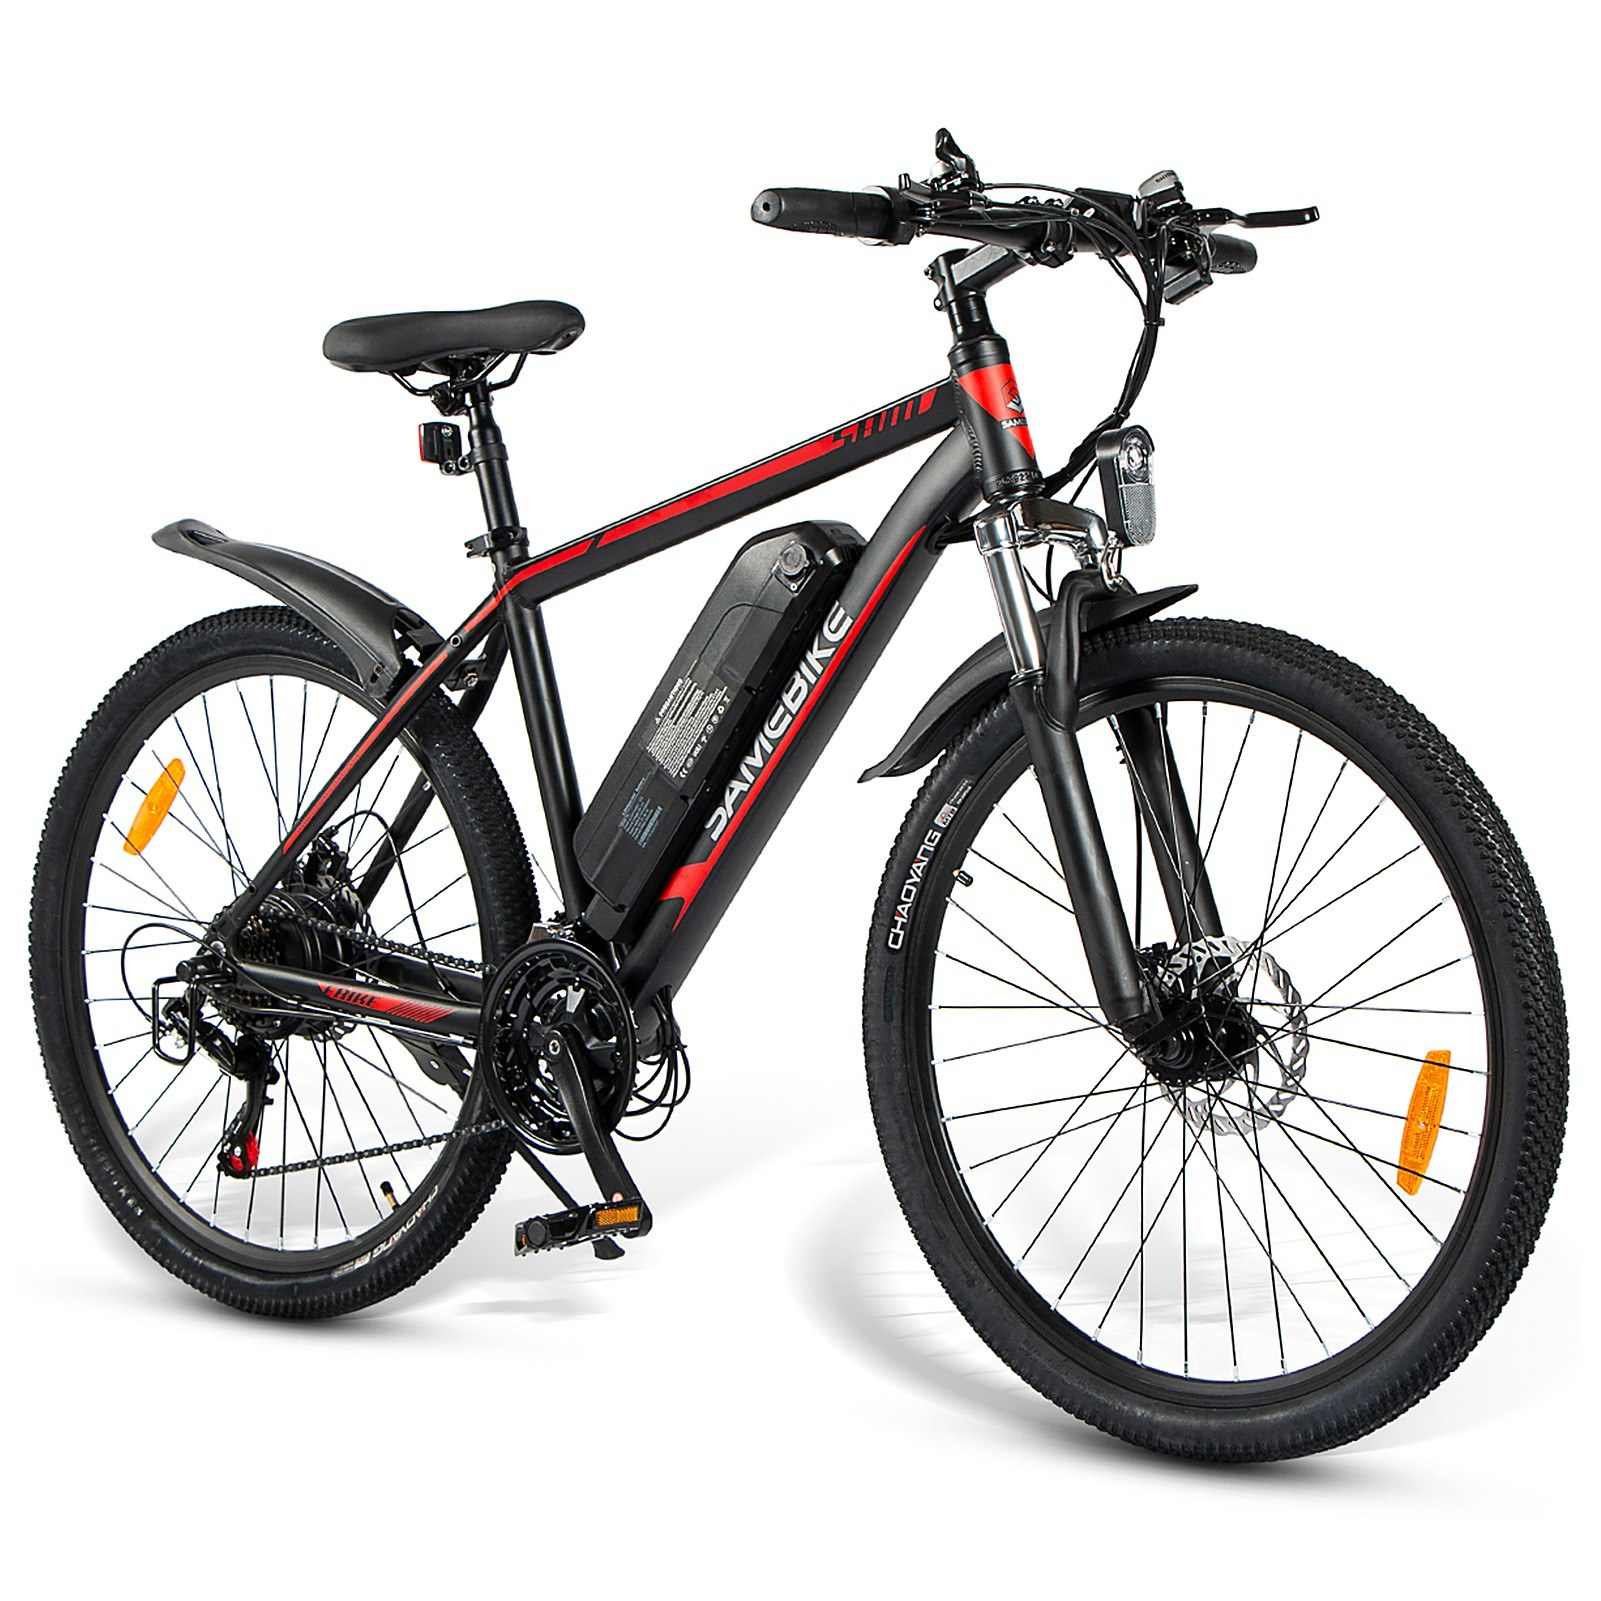 tomtop.com - [EU Warehouse] $198 OFF Samebike SY26-FT 26Inch Power Assist Electric Bicycle, $858.81 (Inclusive of VAT)